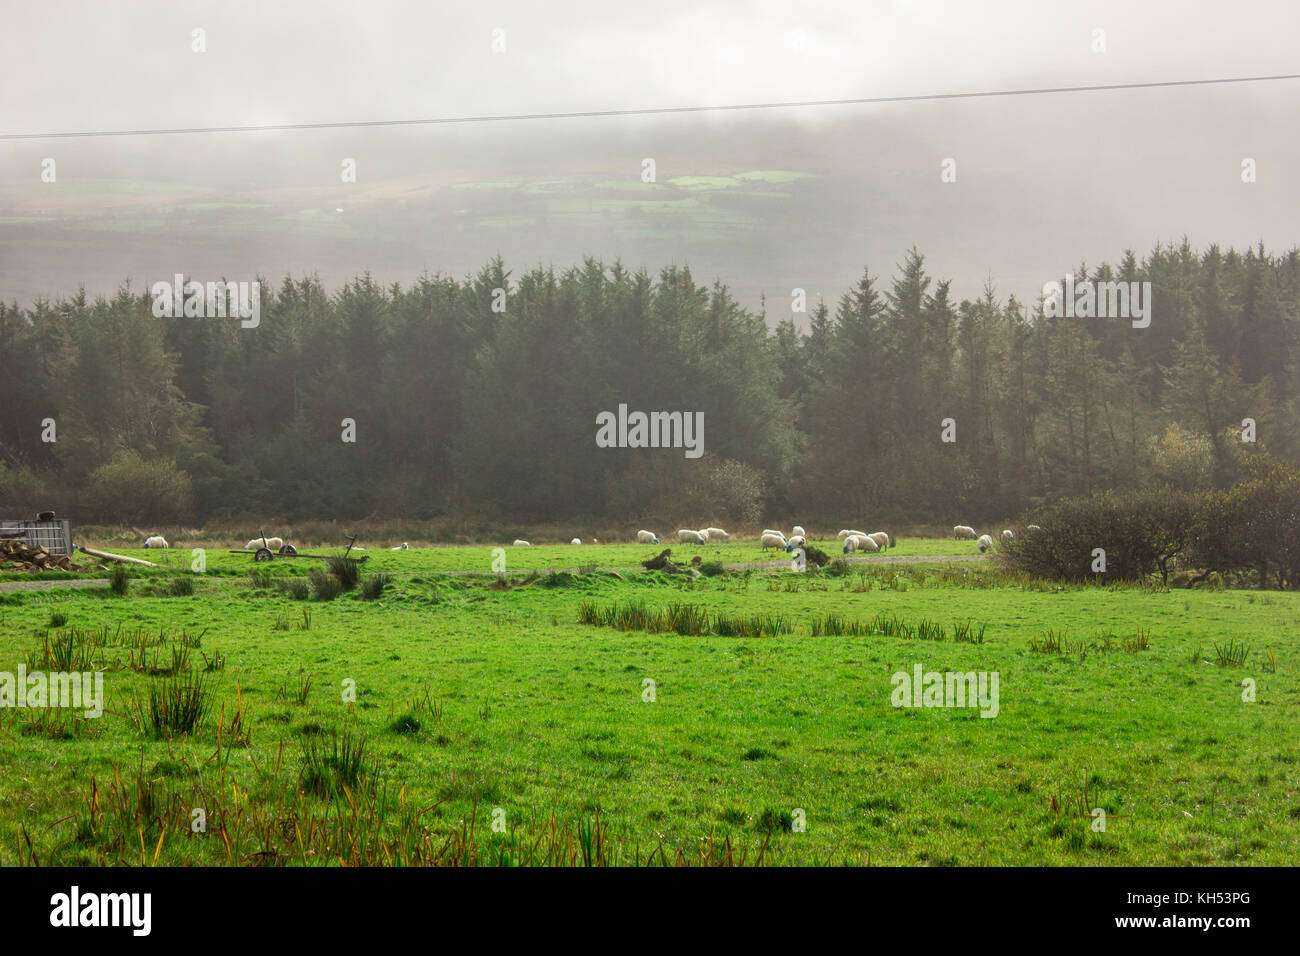 a herd of sheep on a green field and dry tree - Stock Image